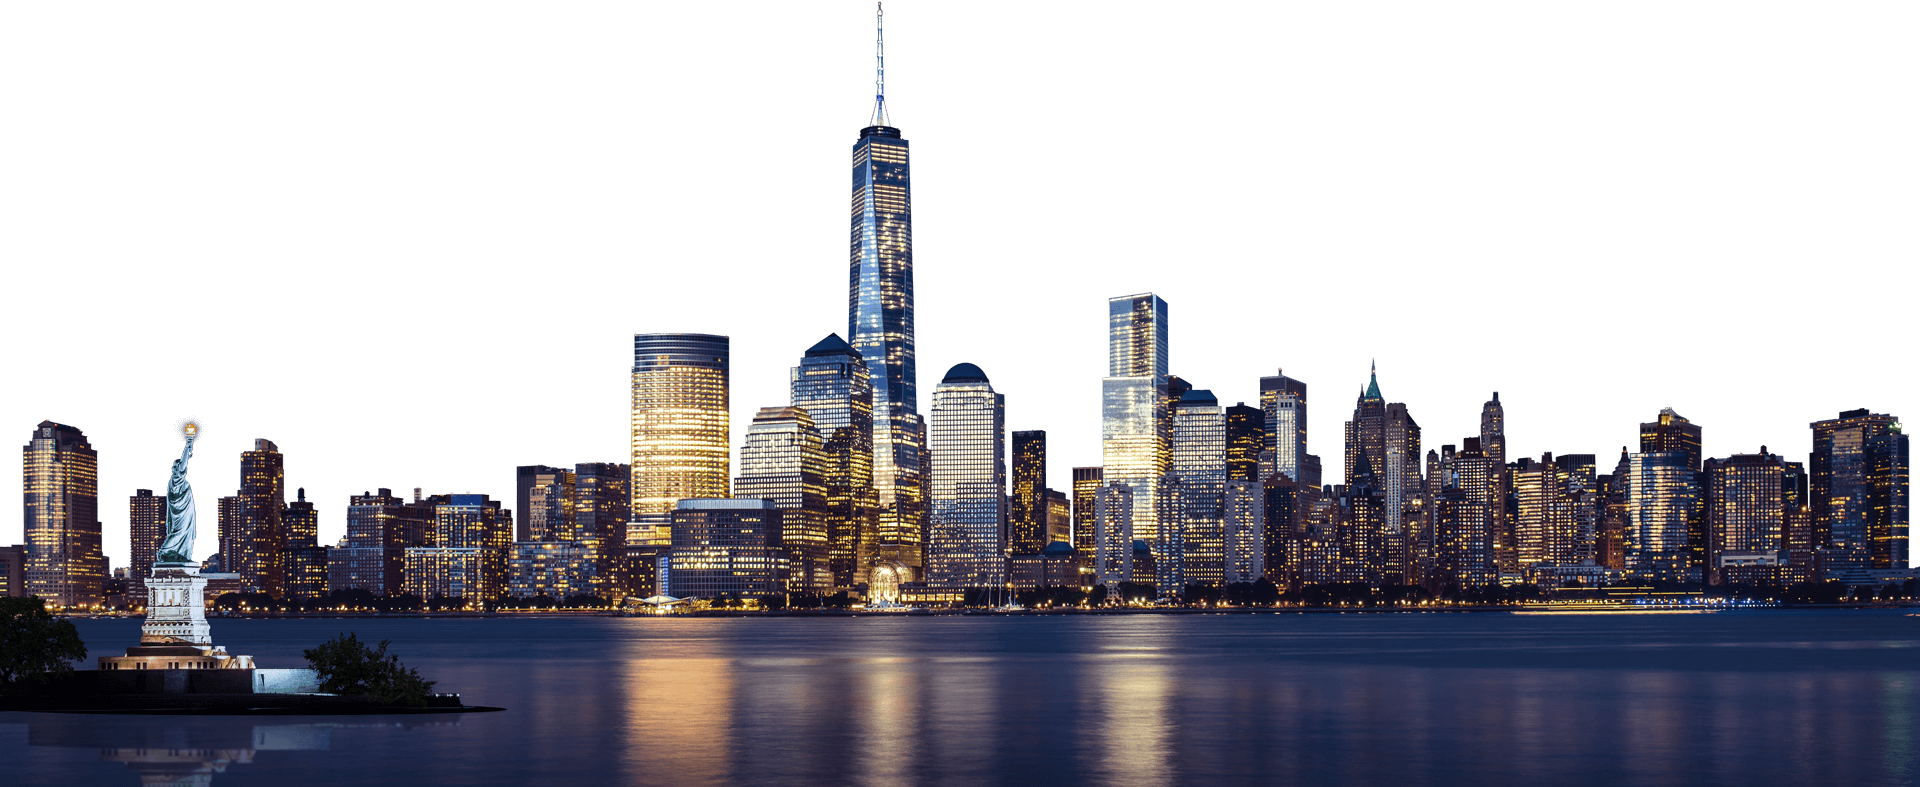 City clipart transparent background. New york skyline png